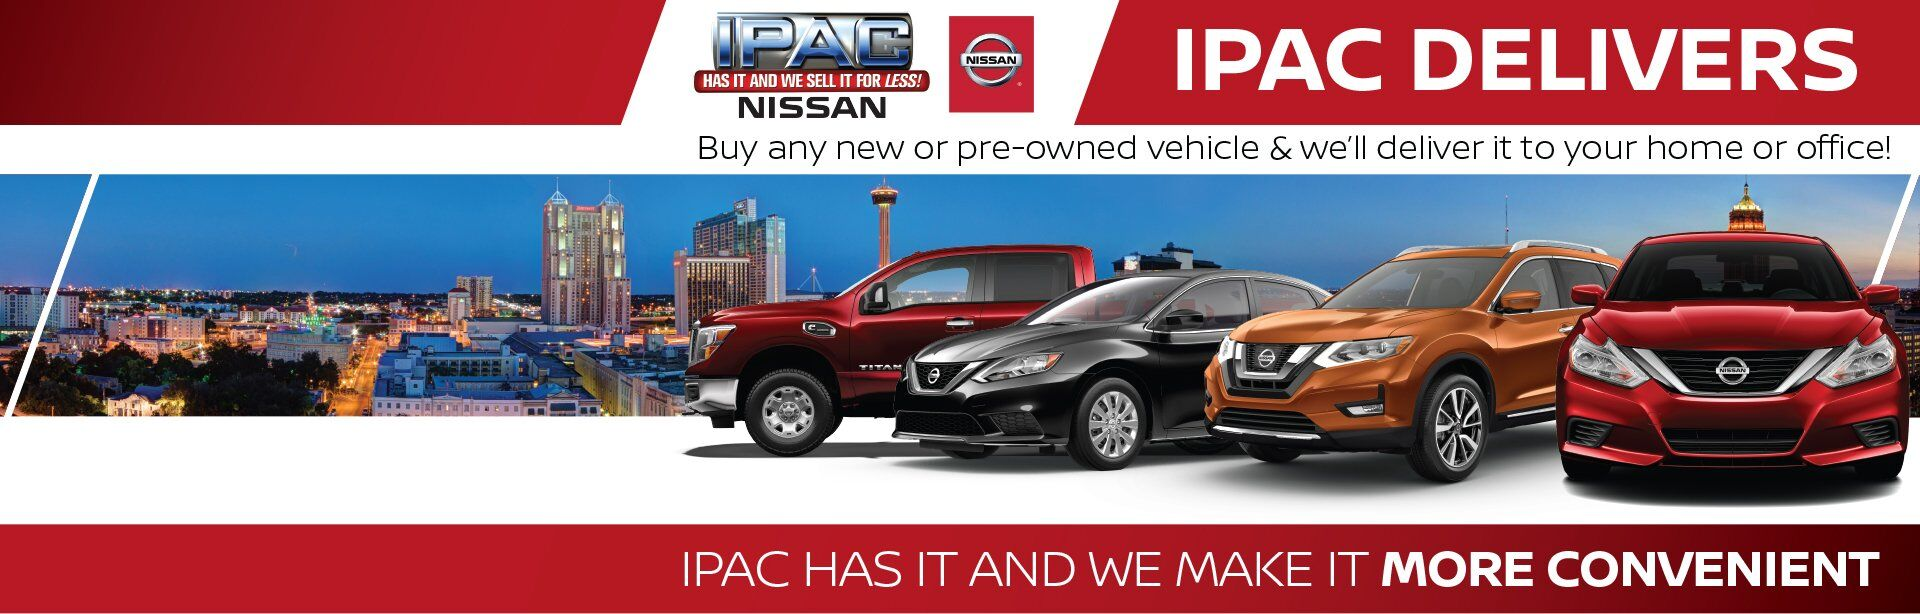 IPAC Delivers